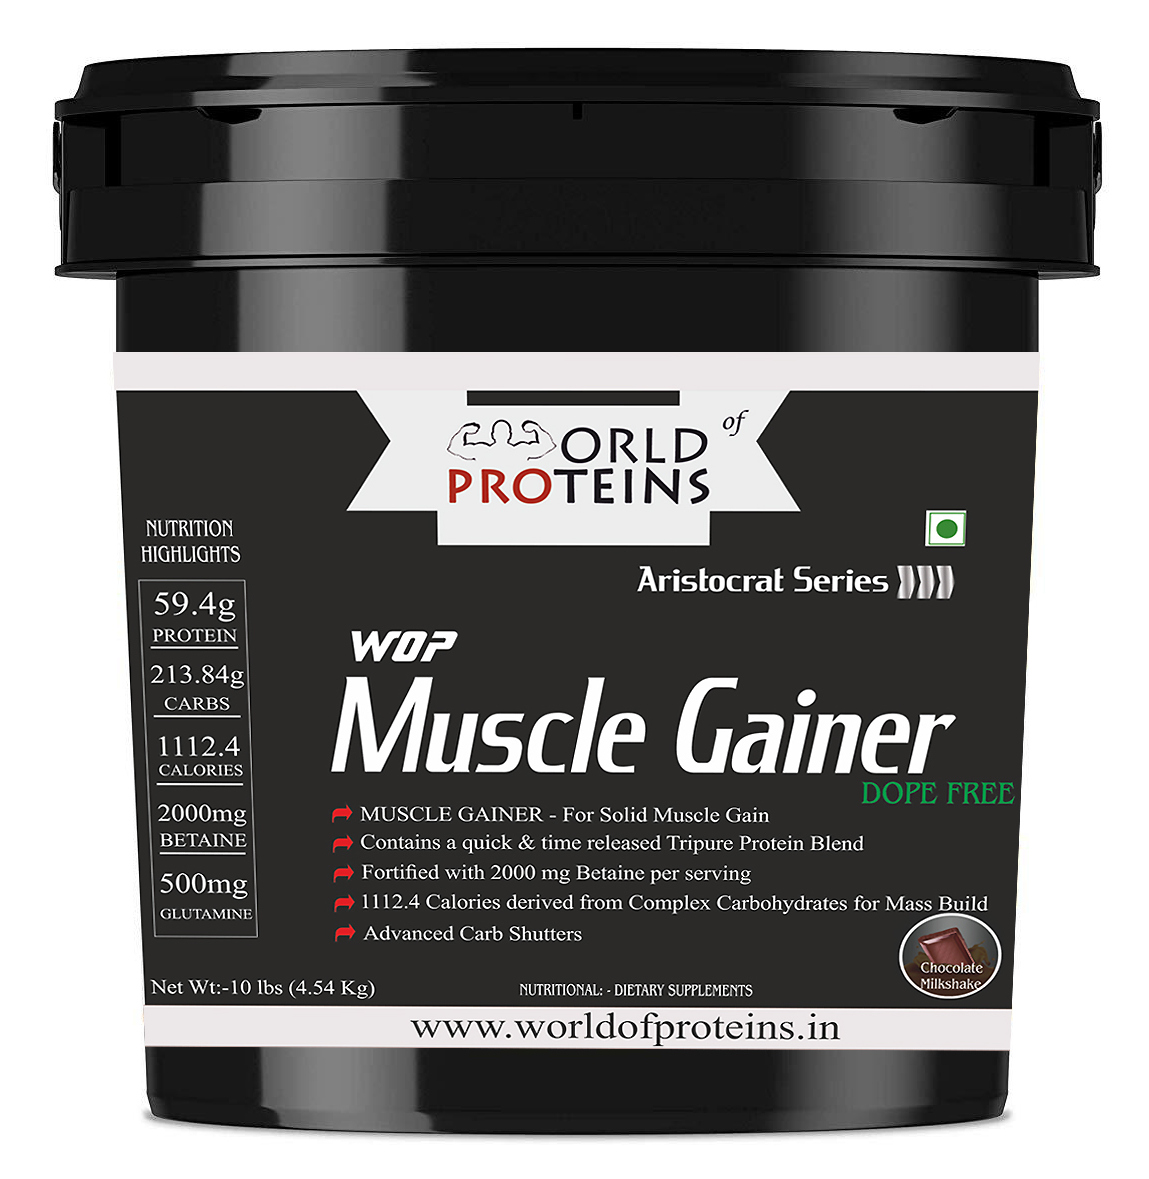 size_084353_WOP_MUSCLE_GAINER_10_lbs_bucket_copy1.jpg